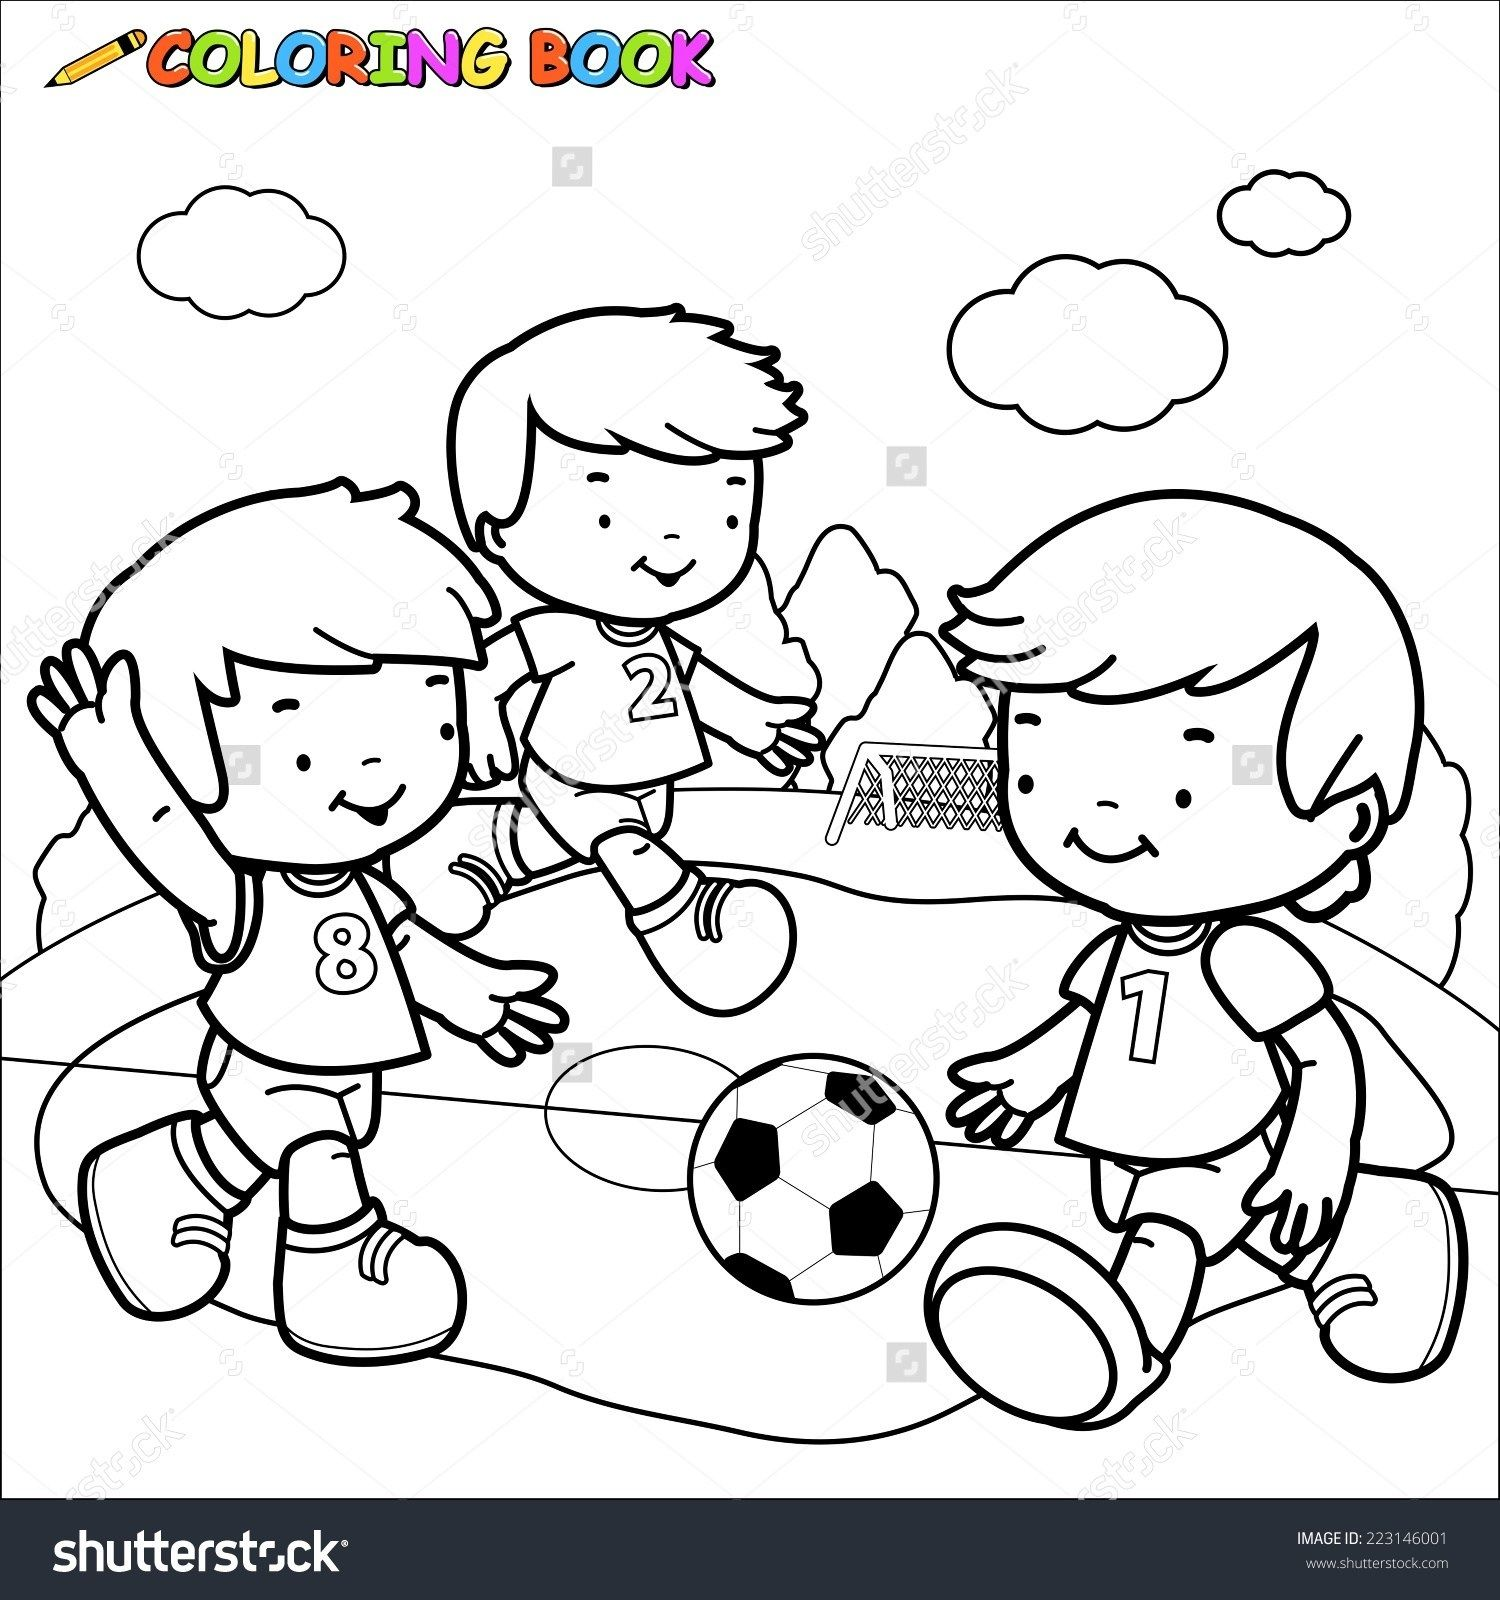 Children Play Park Clipart Black And White Clrg In Children Playing In The Park Clipart Black And White1 Cartoon Coloring Pages Kitty Coloring Coloring Books